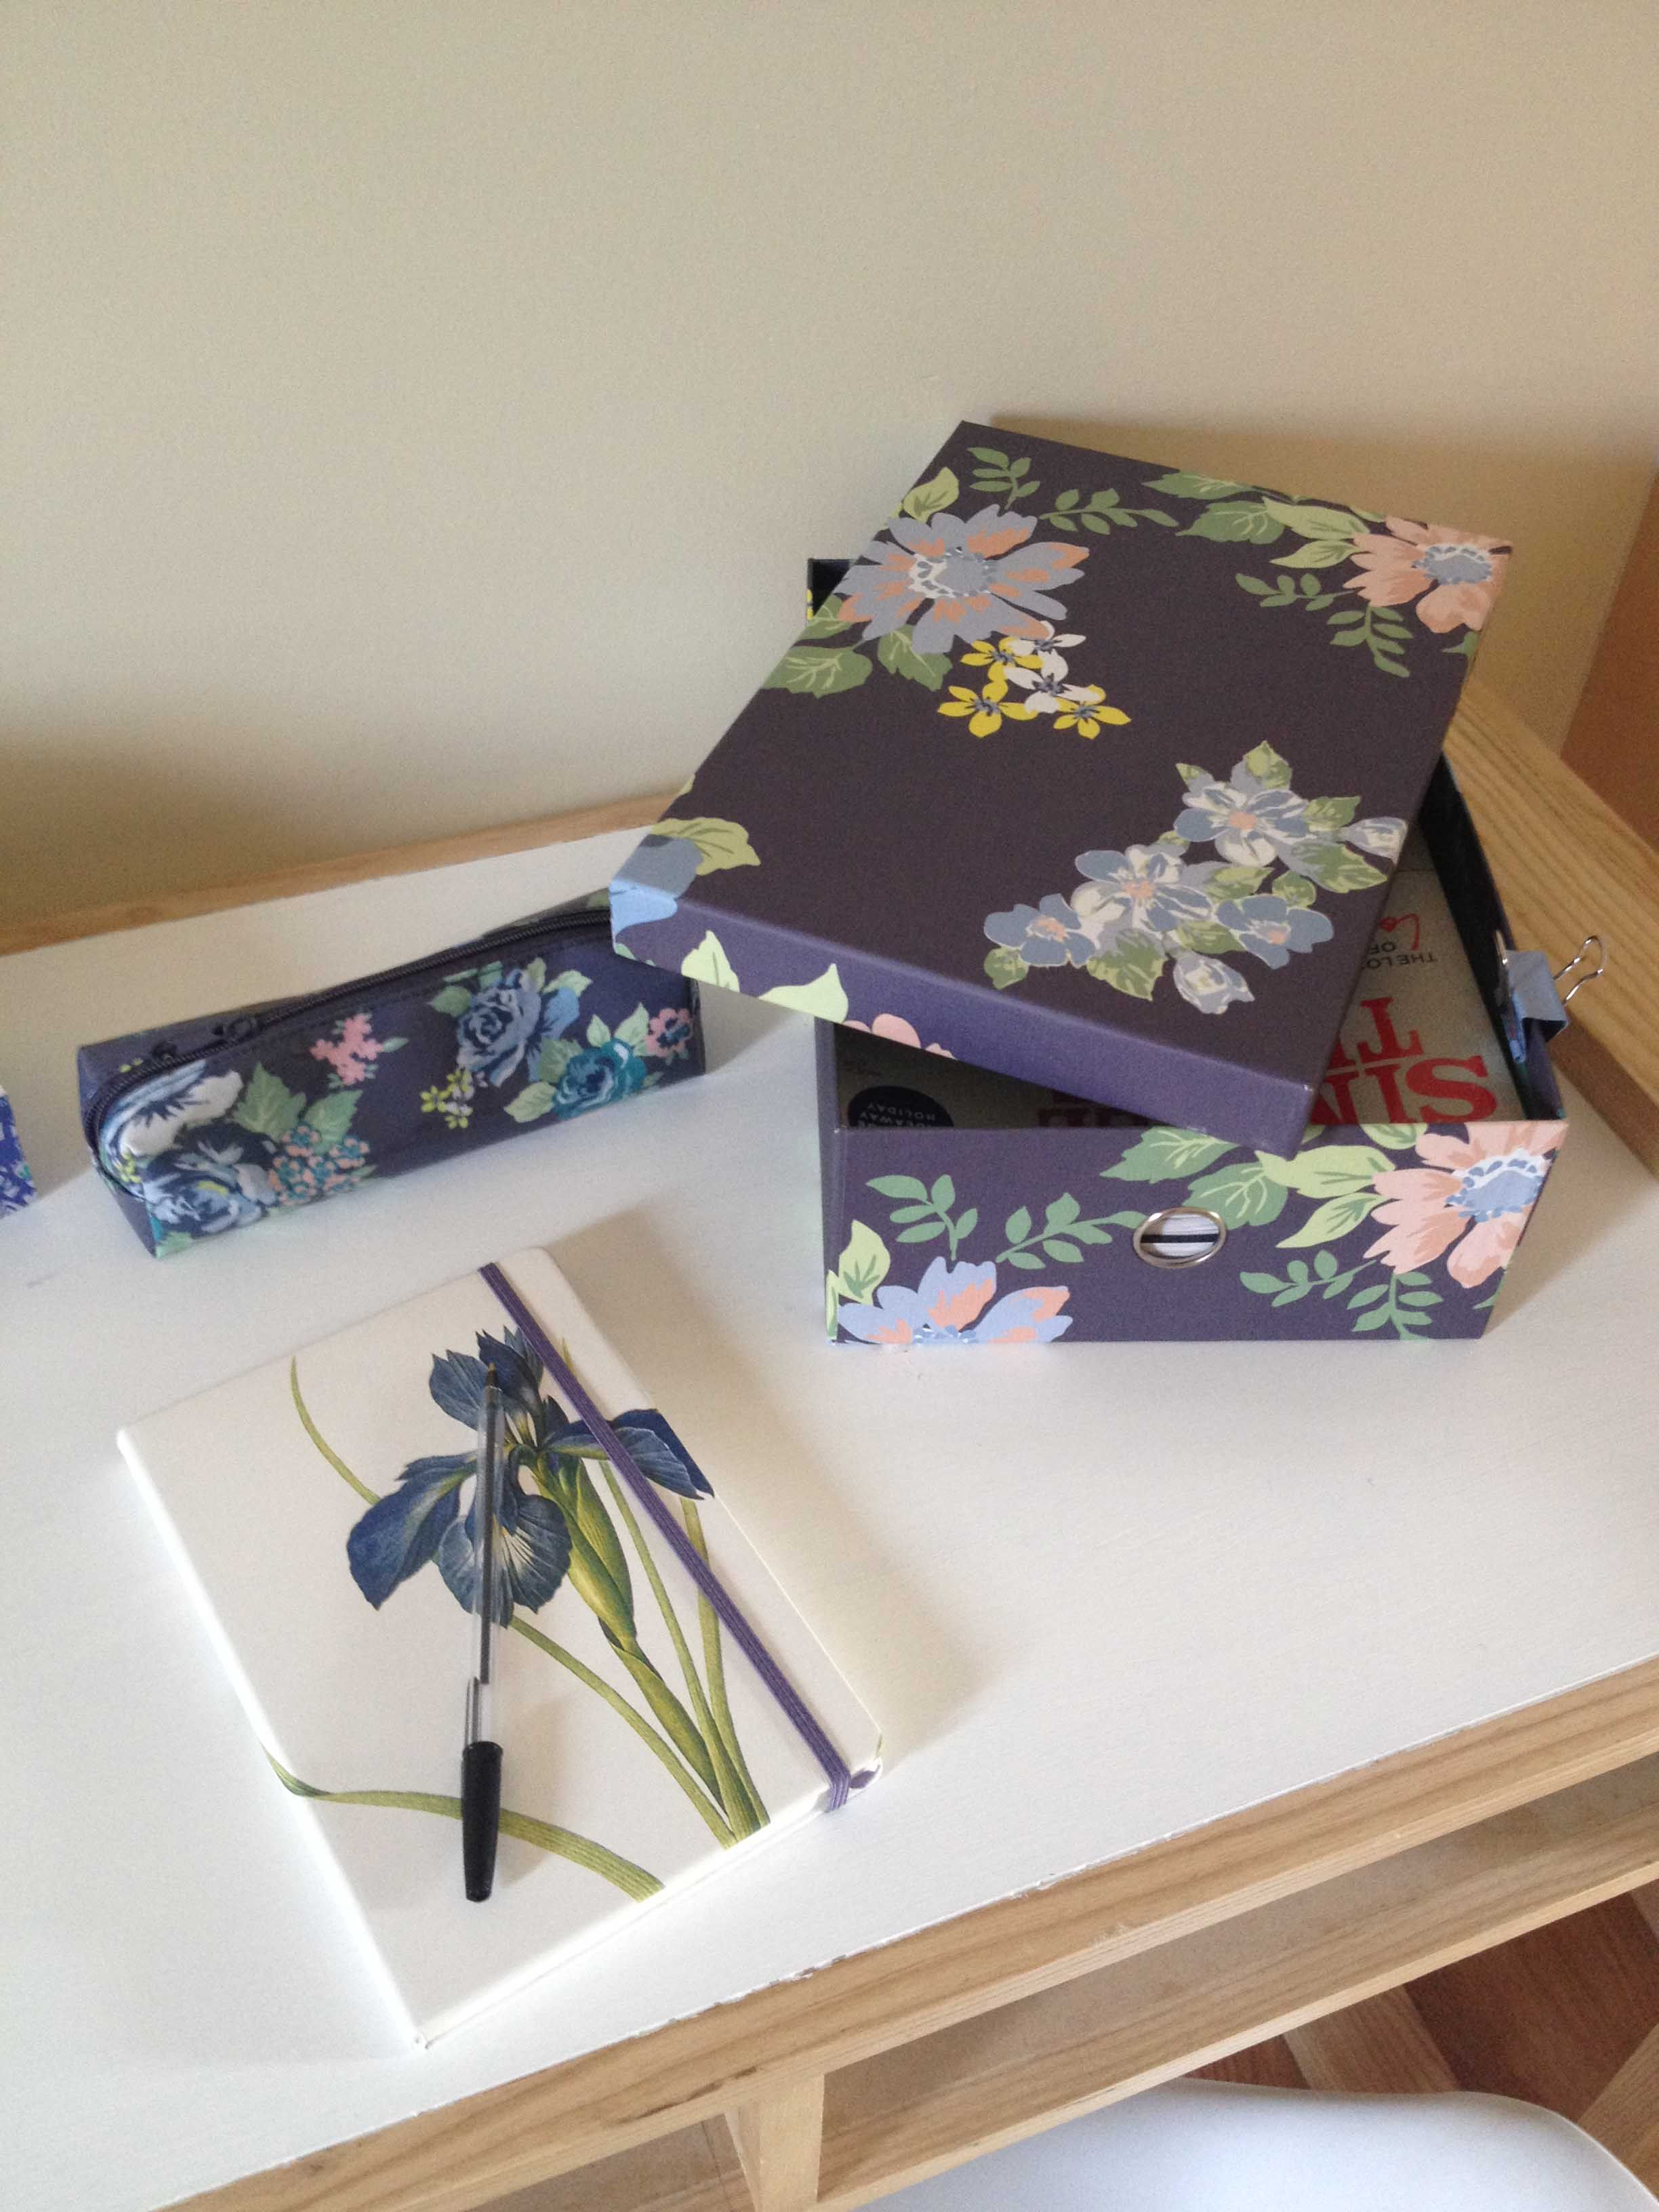 Sainsburys Bedroom Furniture Get Scrapbooking With Sticky Tape Mini Pegs Pencils And